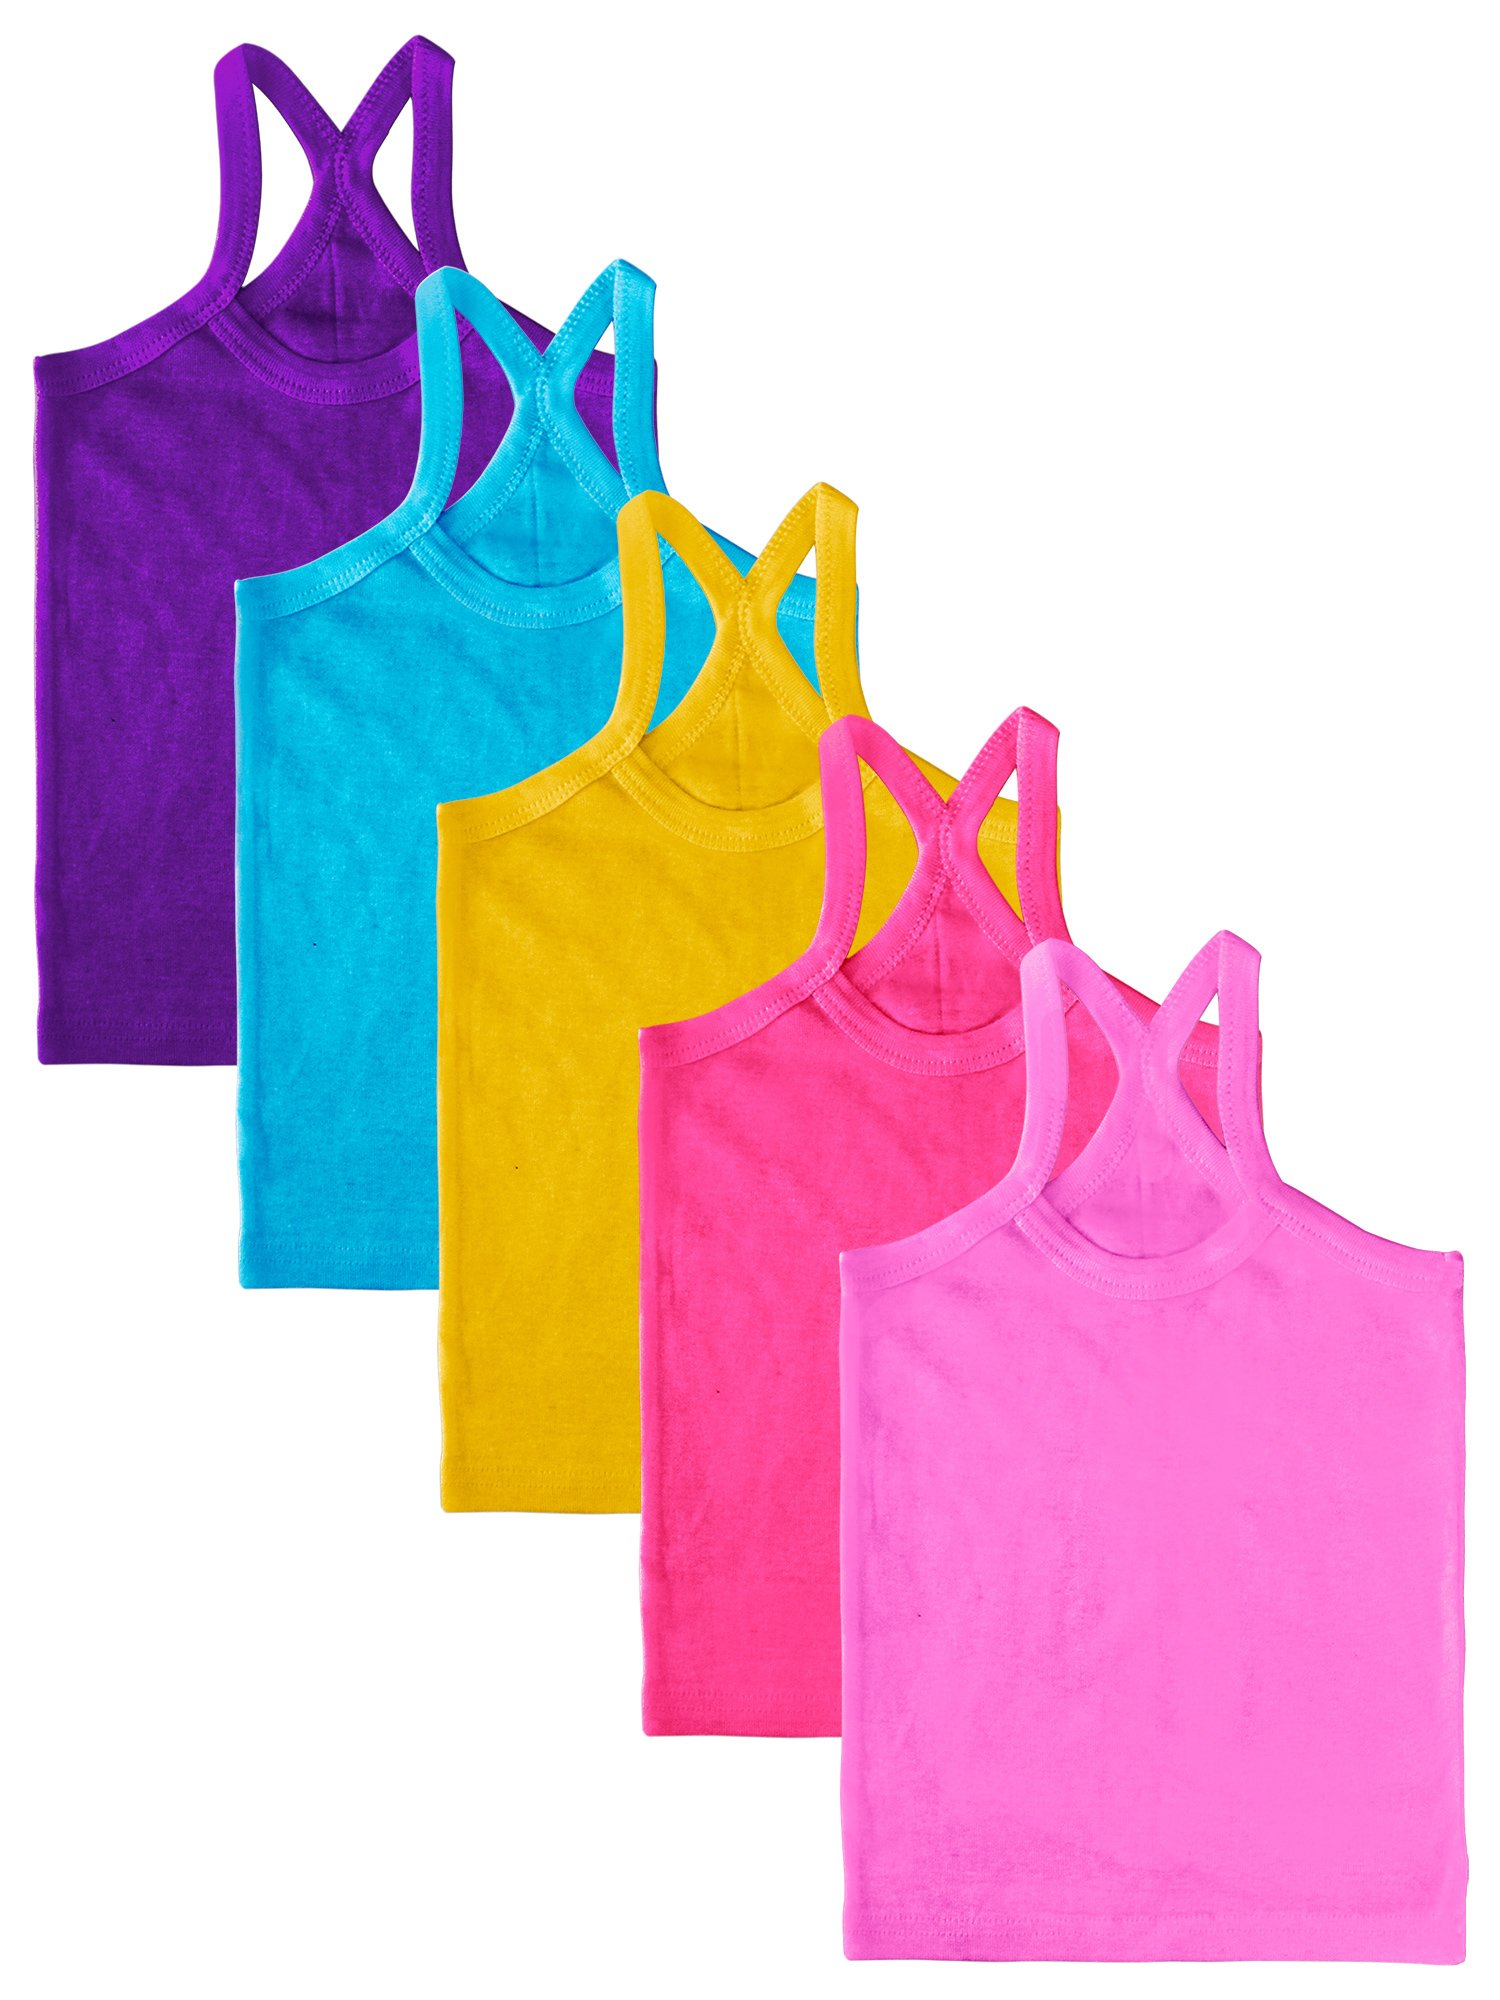 Coobey 5 Pack Girls' Toddler Cami Tank Tops Cotton Undershirt Tank Tee Top Soft Camisole (2T/3T, Mixed 5 Colors)